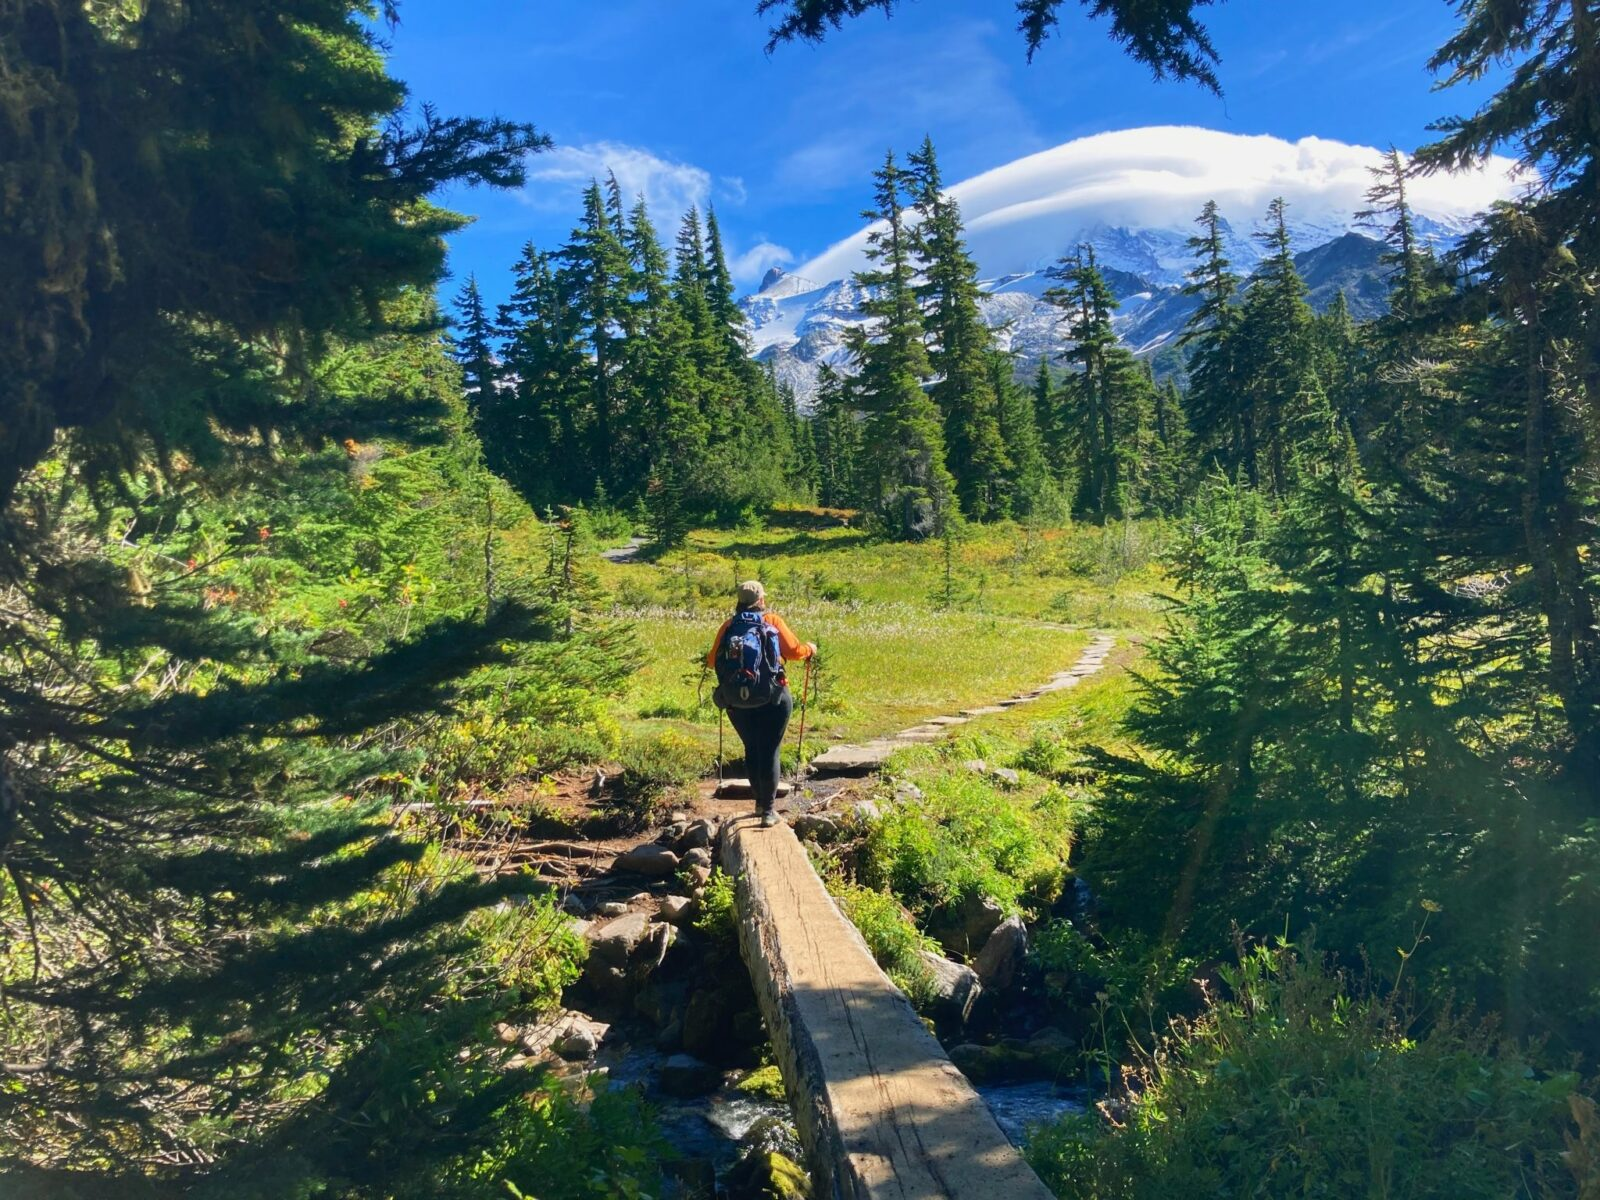 A person with a backpack and hiking poles walking off a log bridge and onto a trail through a wildflower meadow in Spray Park. There are evergreen trees surrounding the meadow and Mt Rainier in the distance has clouds around it's summit.